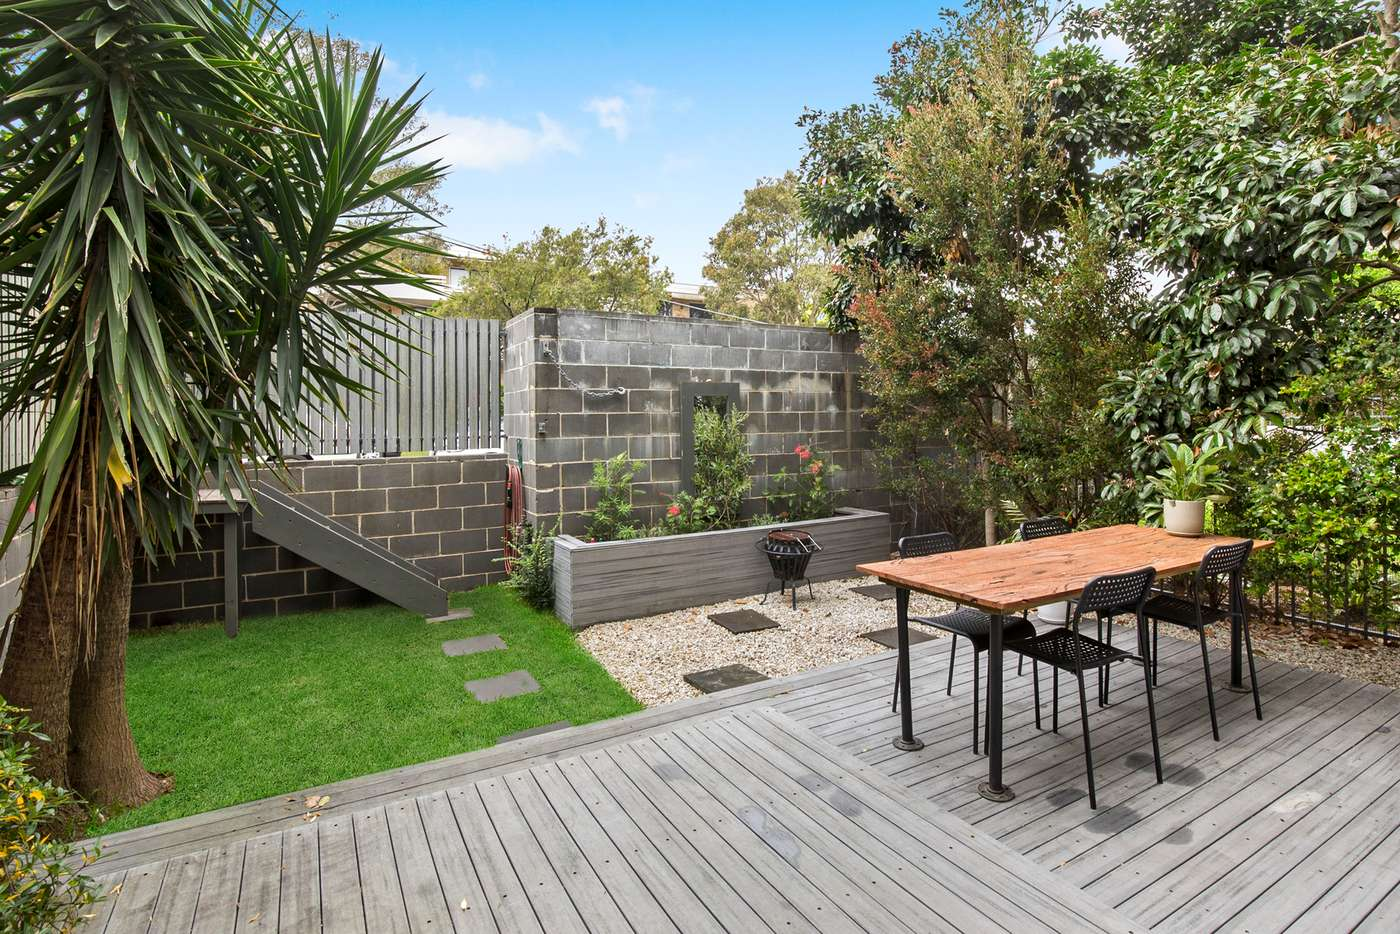 Main view of Homely apartment listing, 9/41 Roseberry Street, Manly Vale NSW 2093